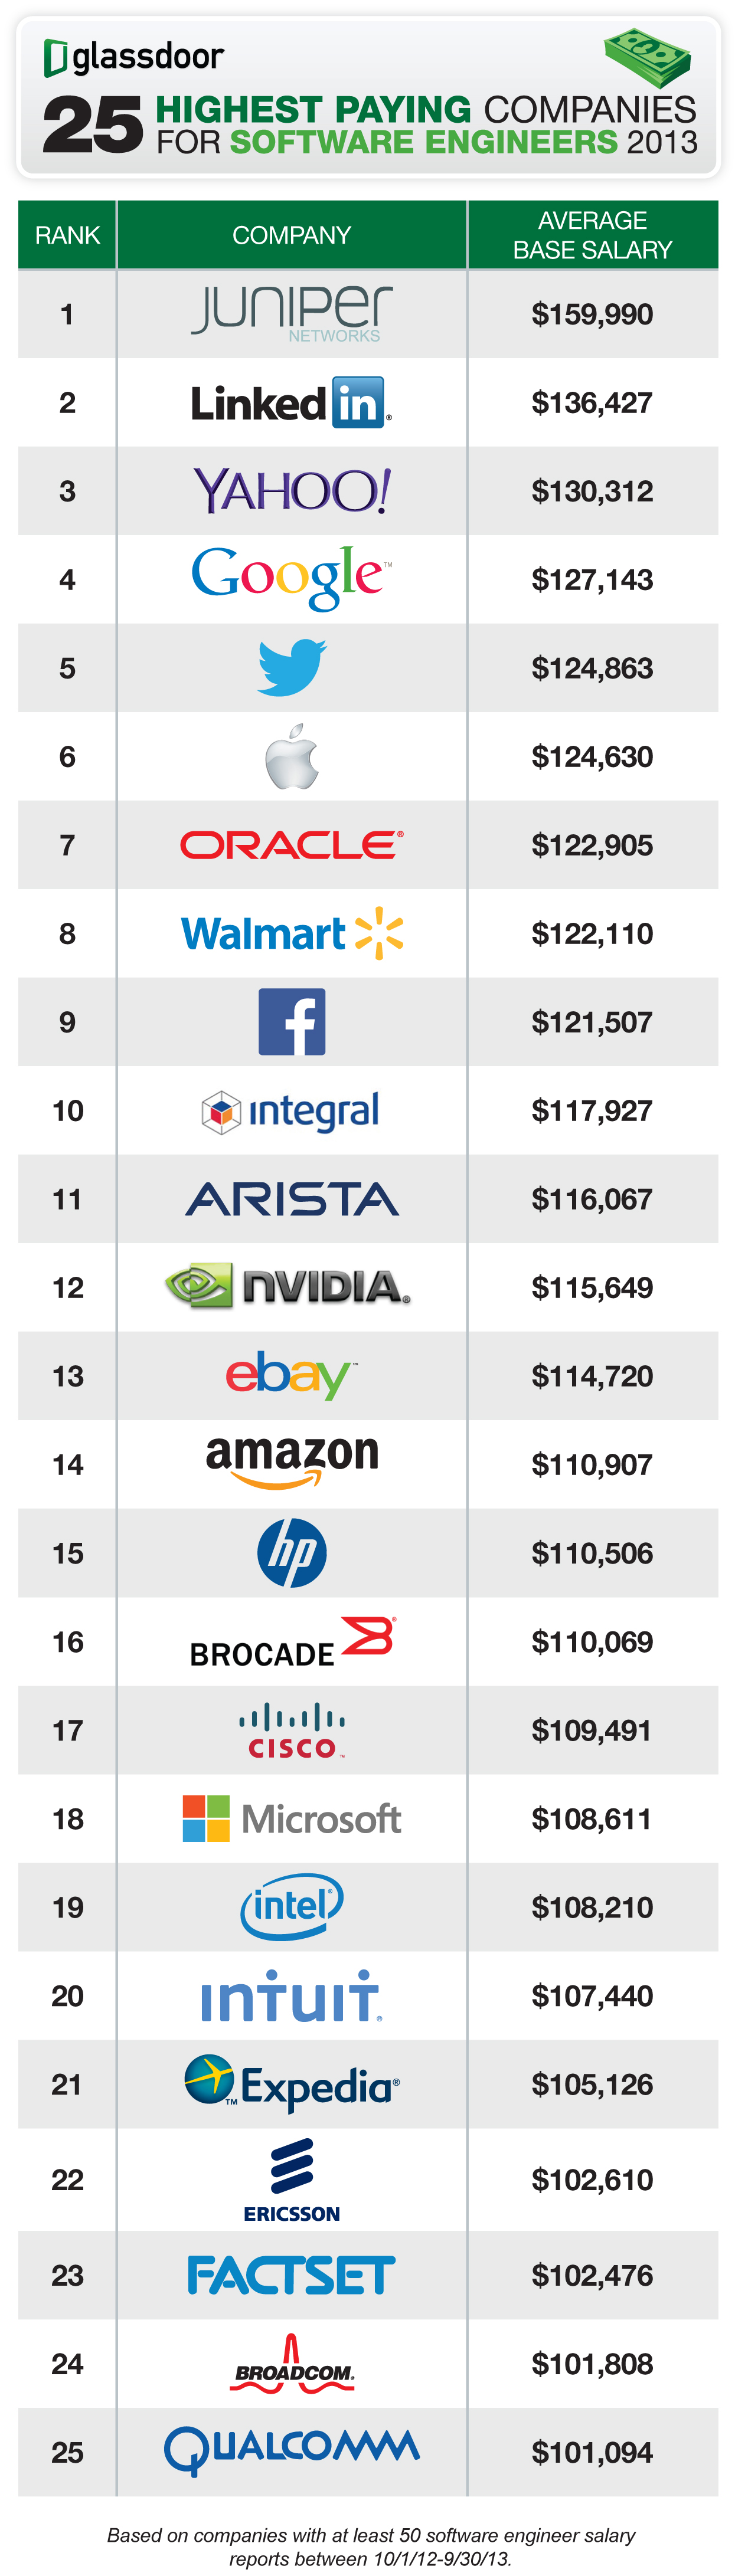 25-Highest-Paying-Companies-for-Software-Engineers